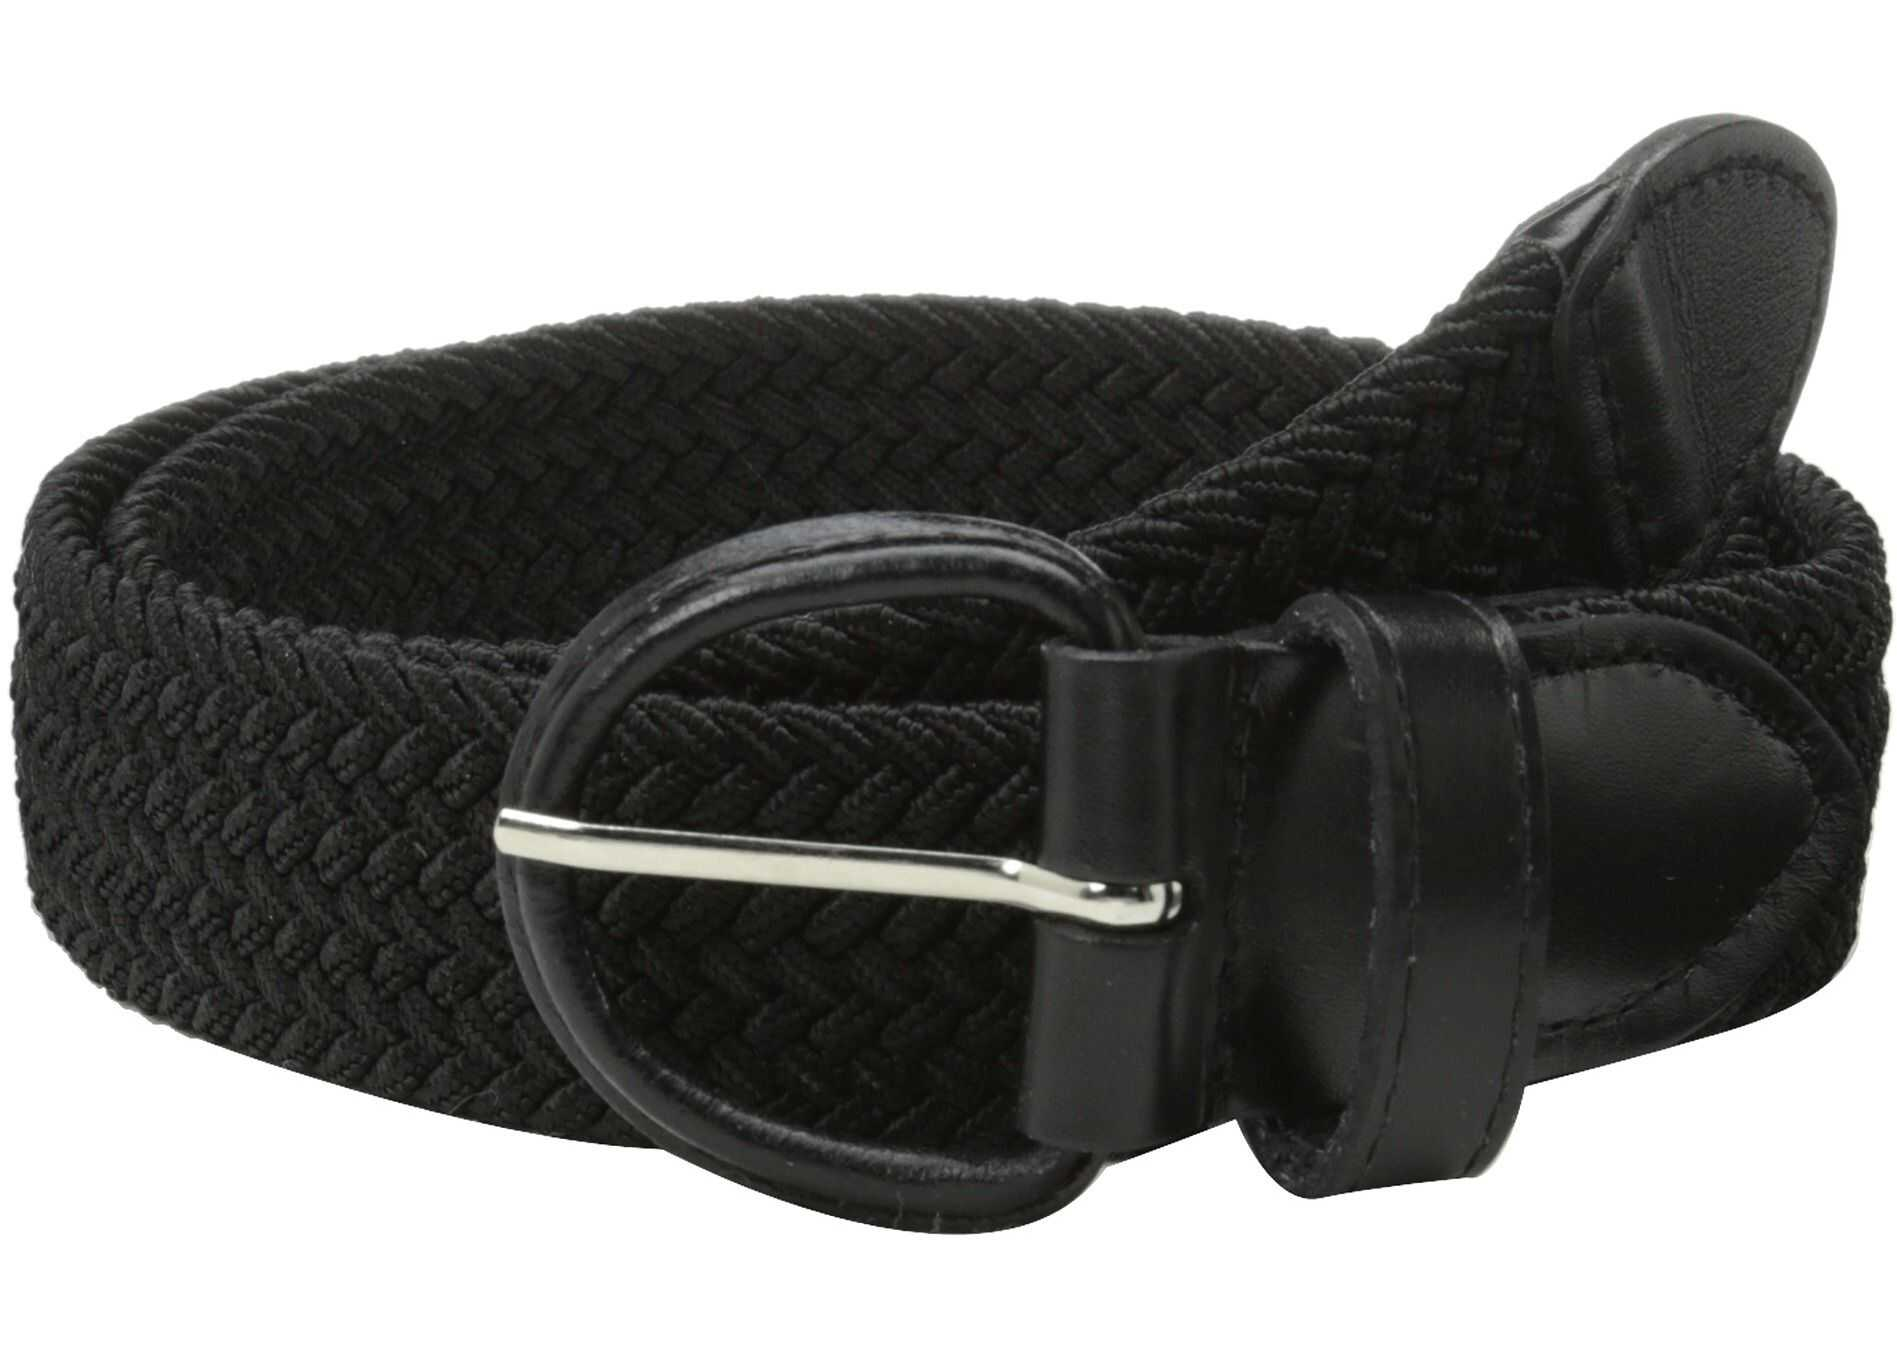 Florsheim Braided Elastic Stretch Belt 35mm Black